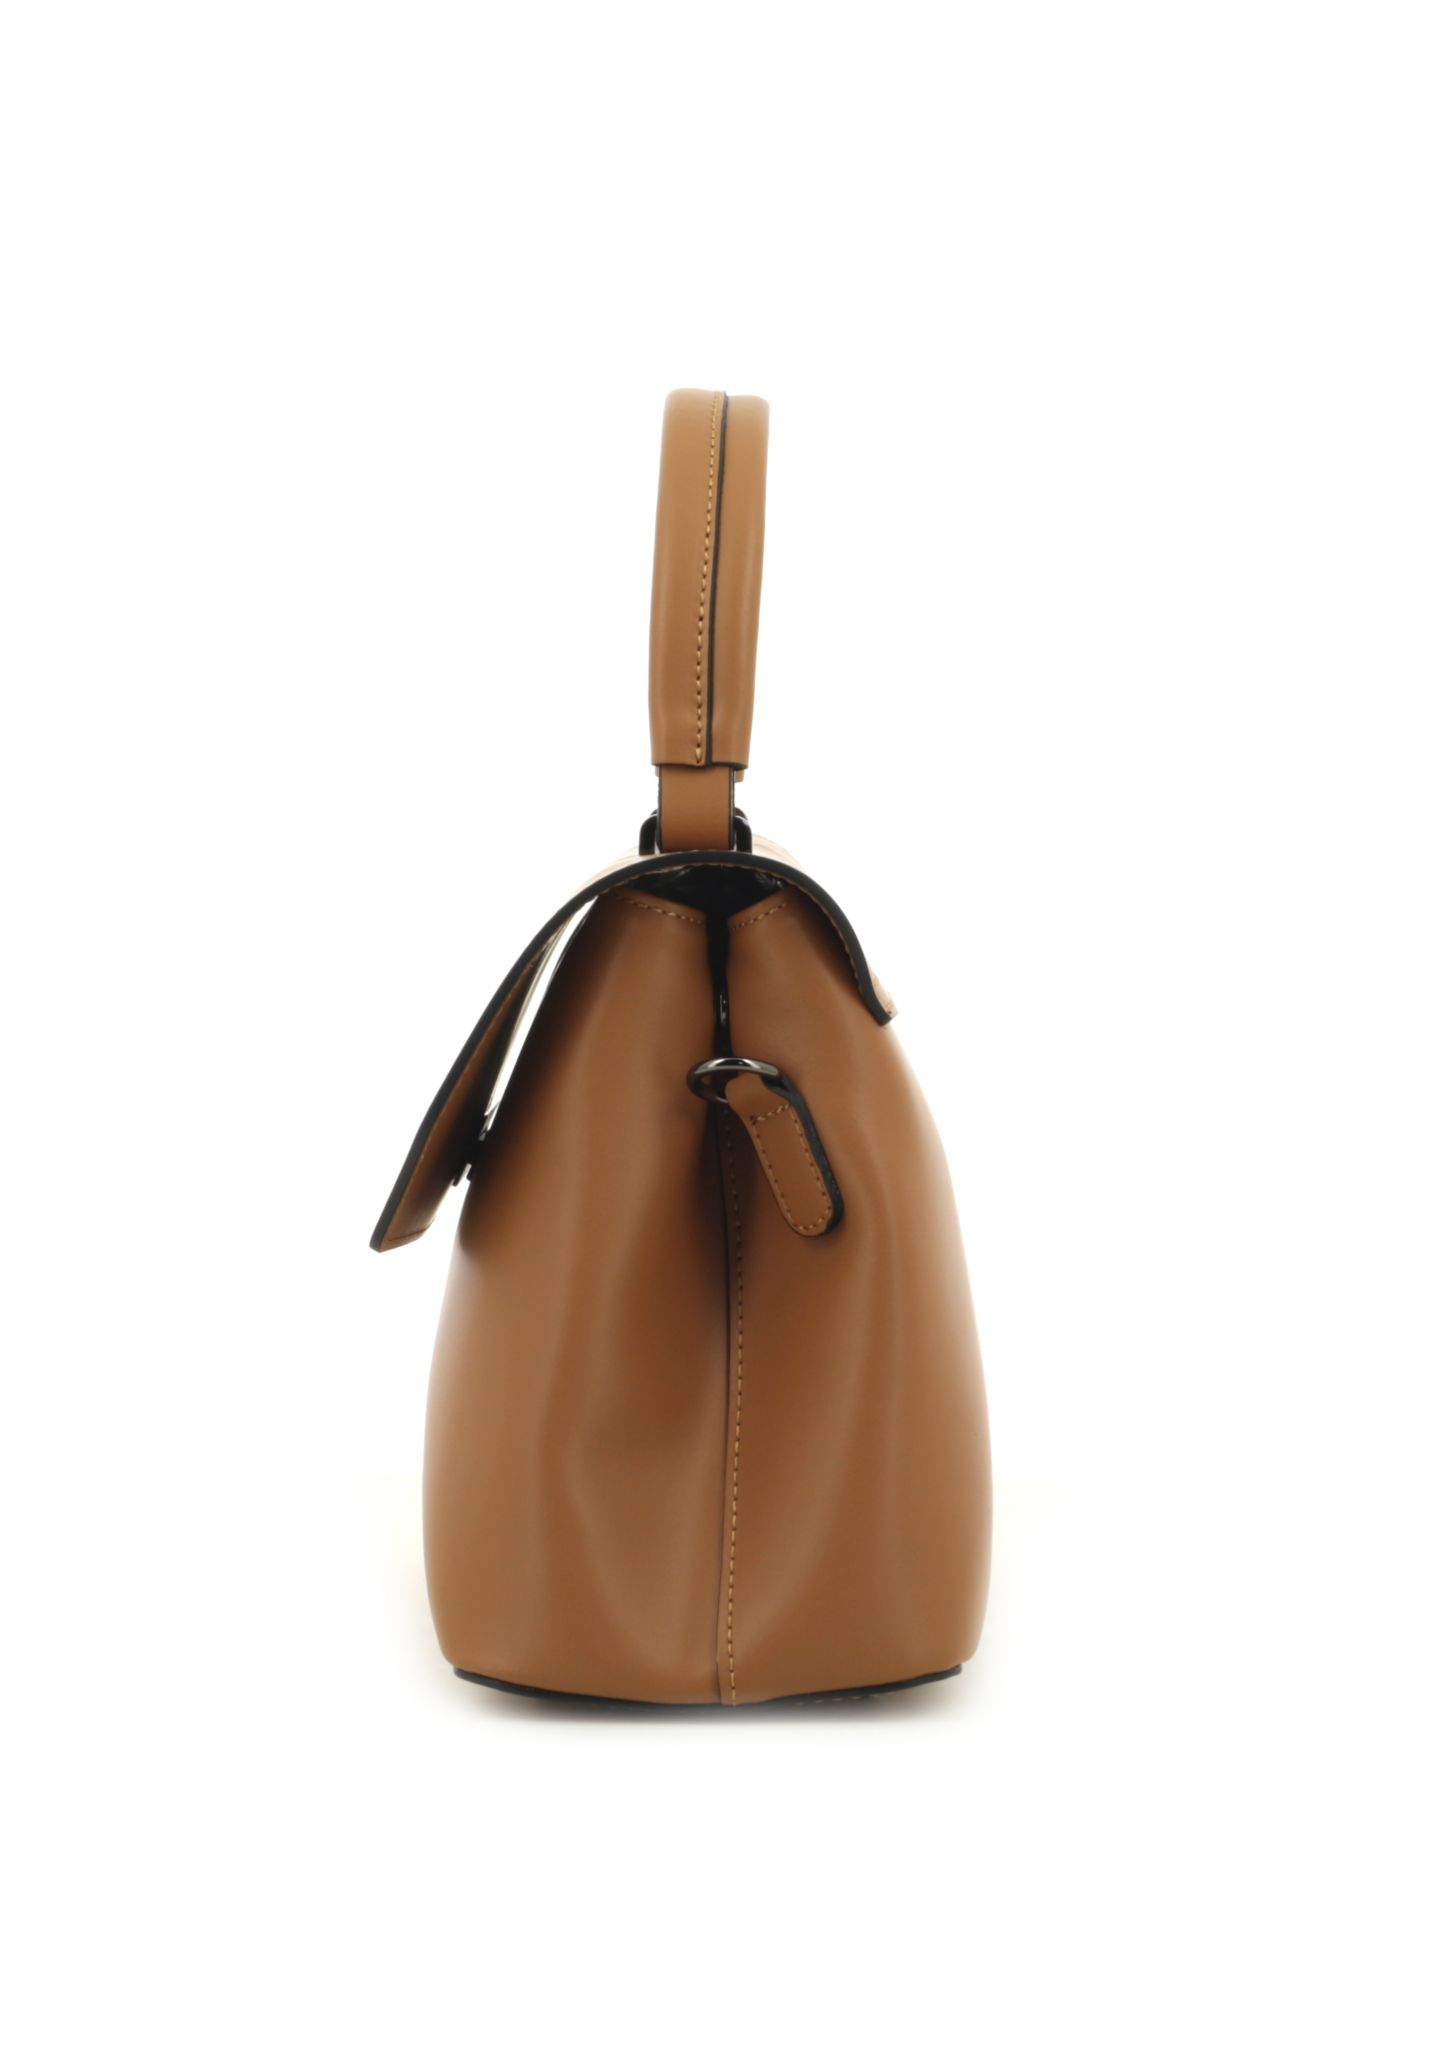 Cognac Ruga Leather Handbag With Detachable Strap 034 detail 4